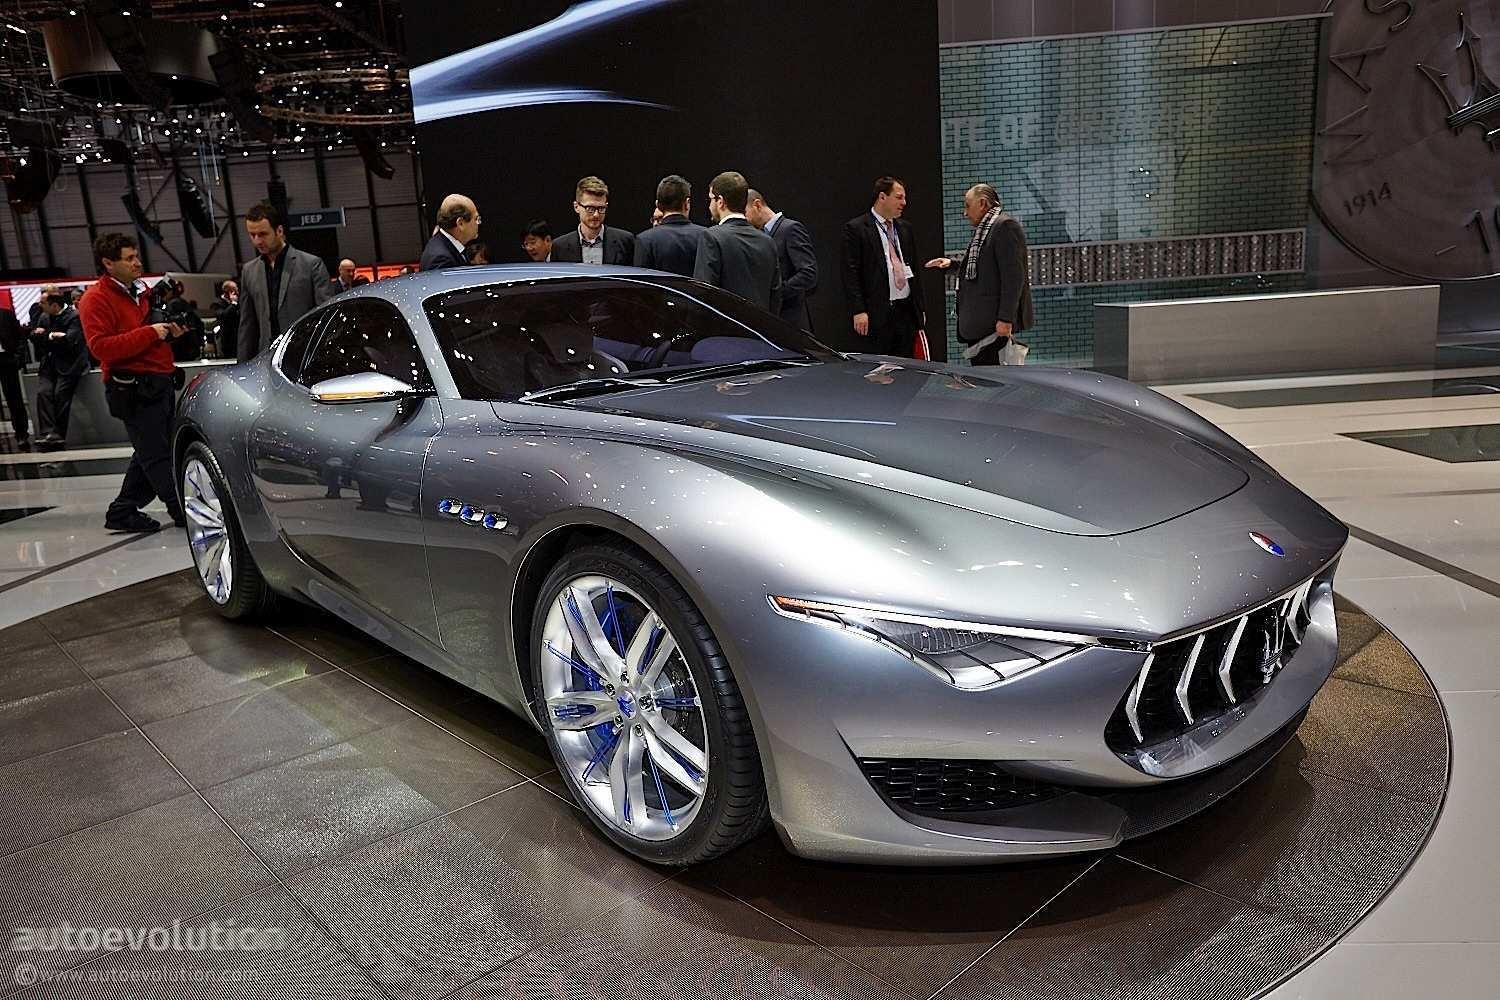 90 Best Review 2019 Maserati Alfieri Cabrio New Review with 2019 Maserati Alfieri Cabrio